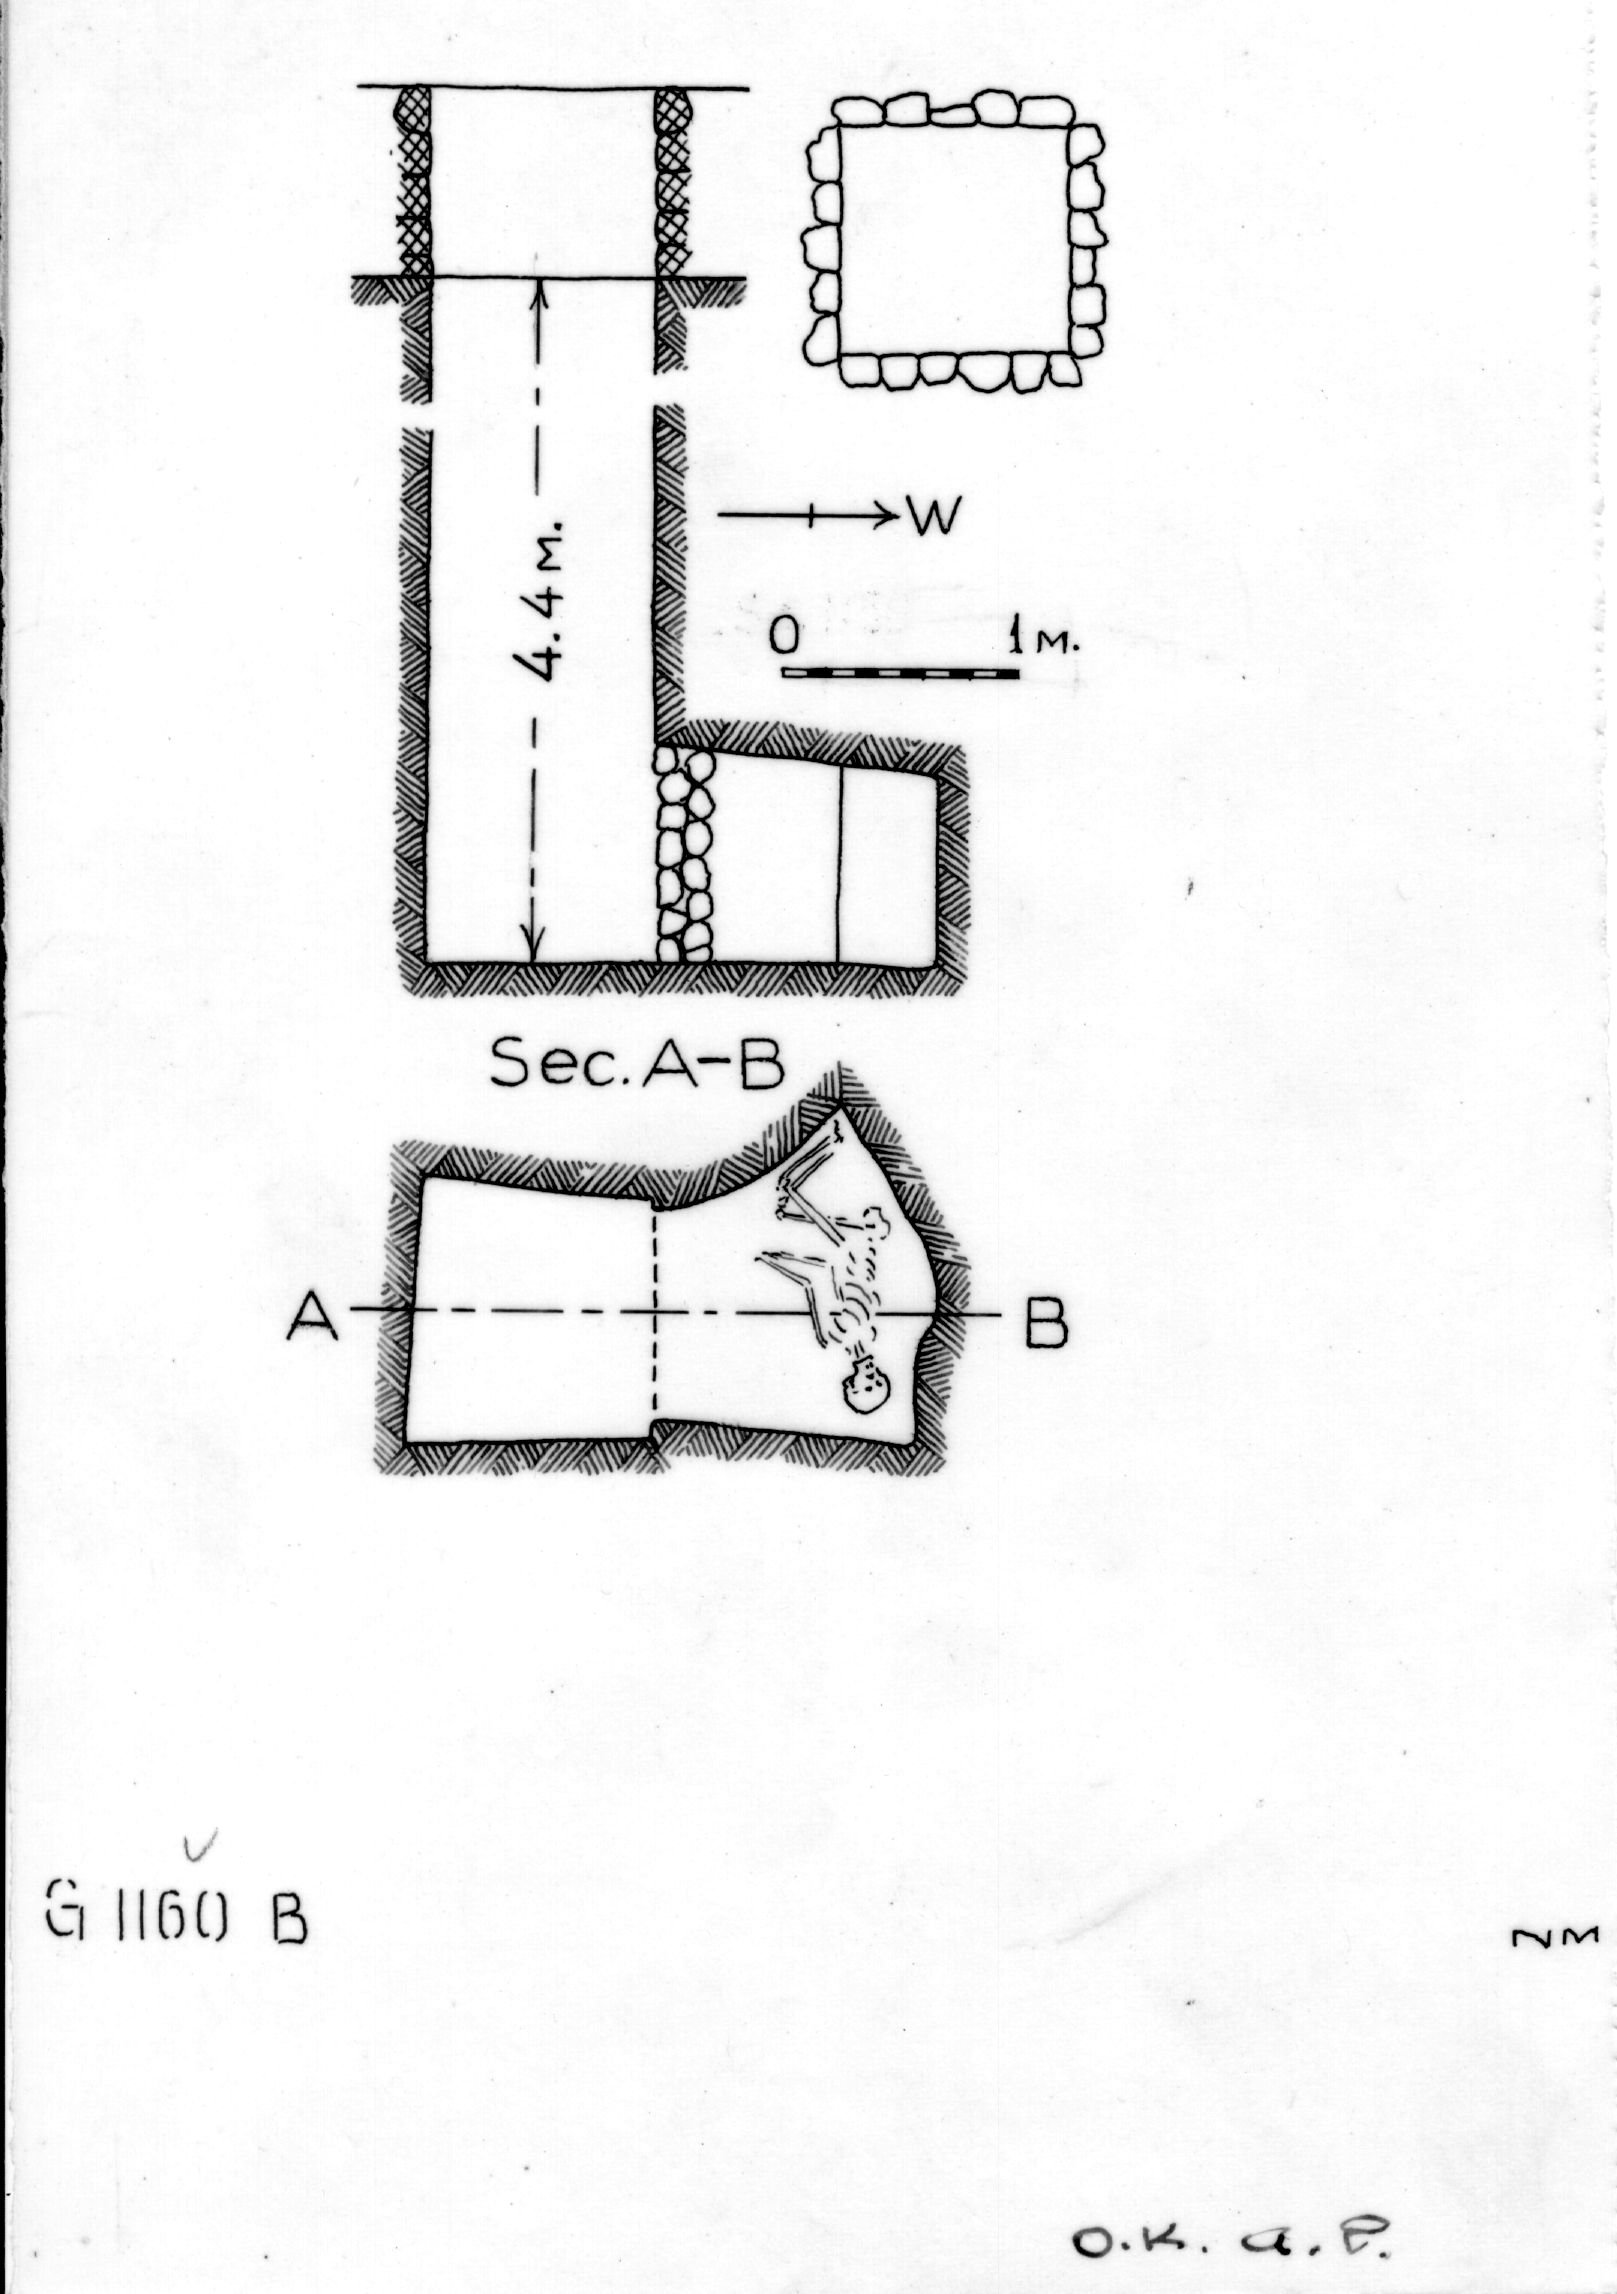 Maps and plans: G 1160, Shaft B